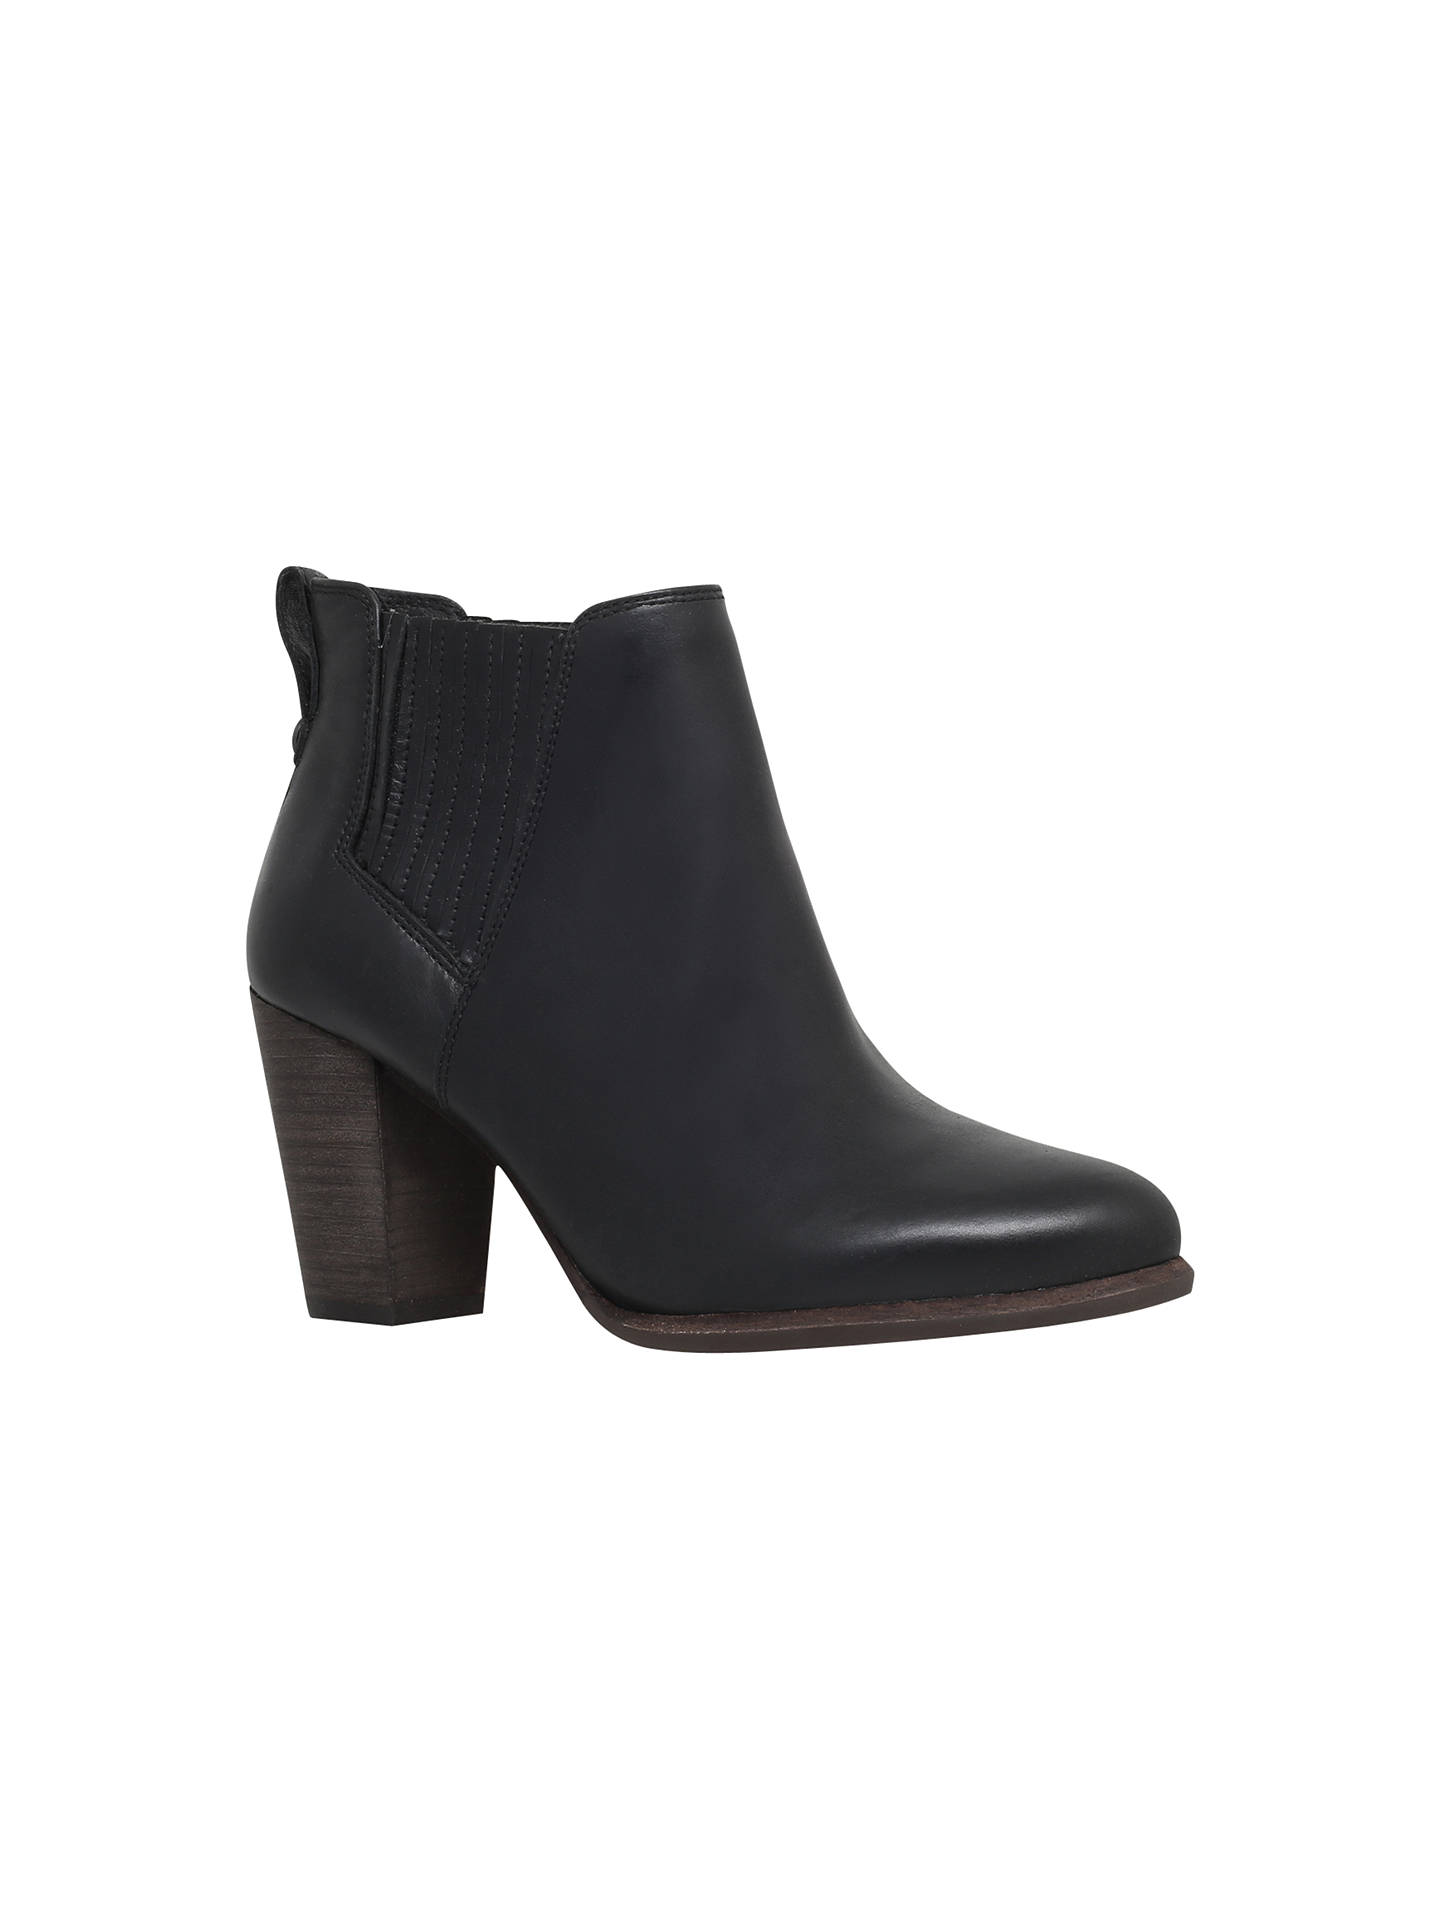 aff0b72e55 UGG Poppy Stacked Heel Ankle Boots at John Lewis   Partners